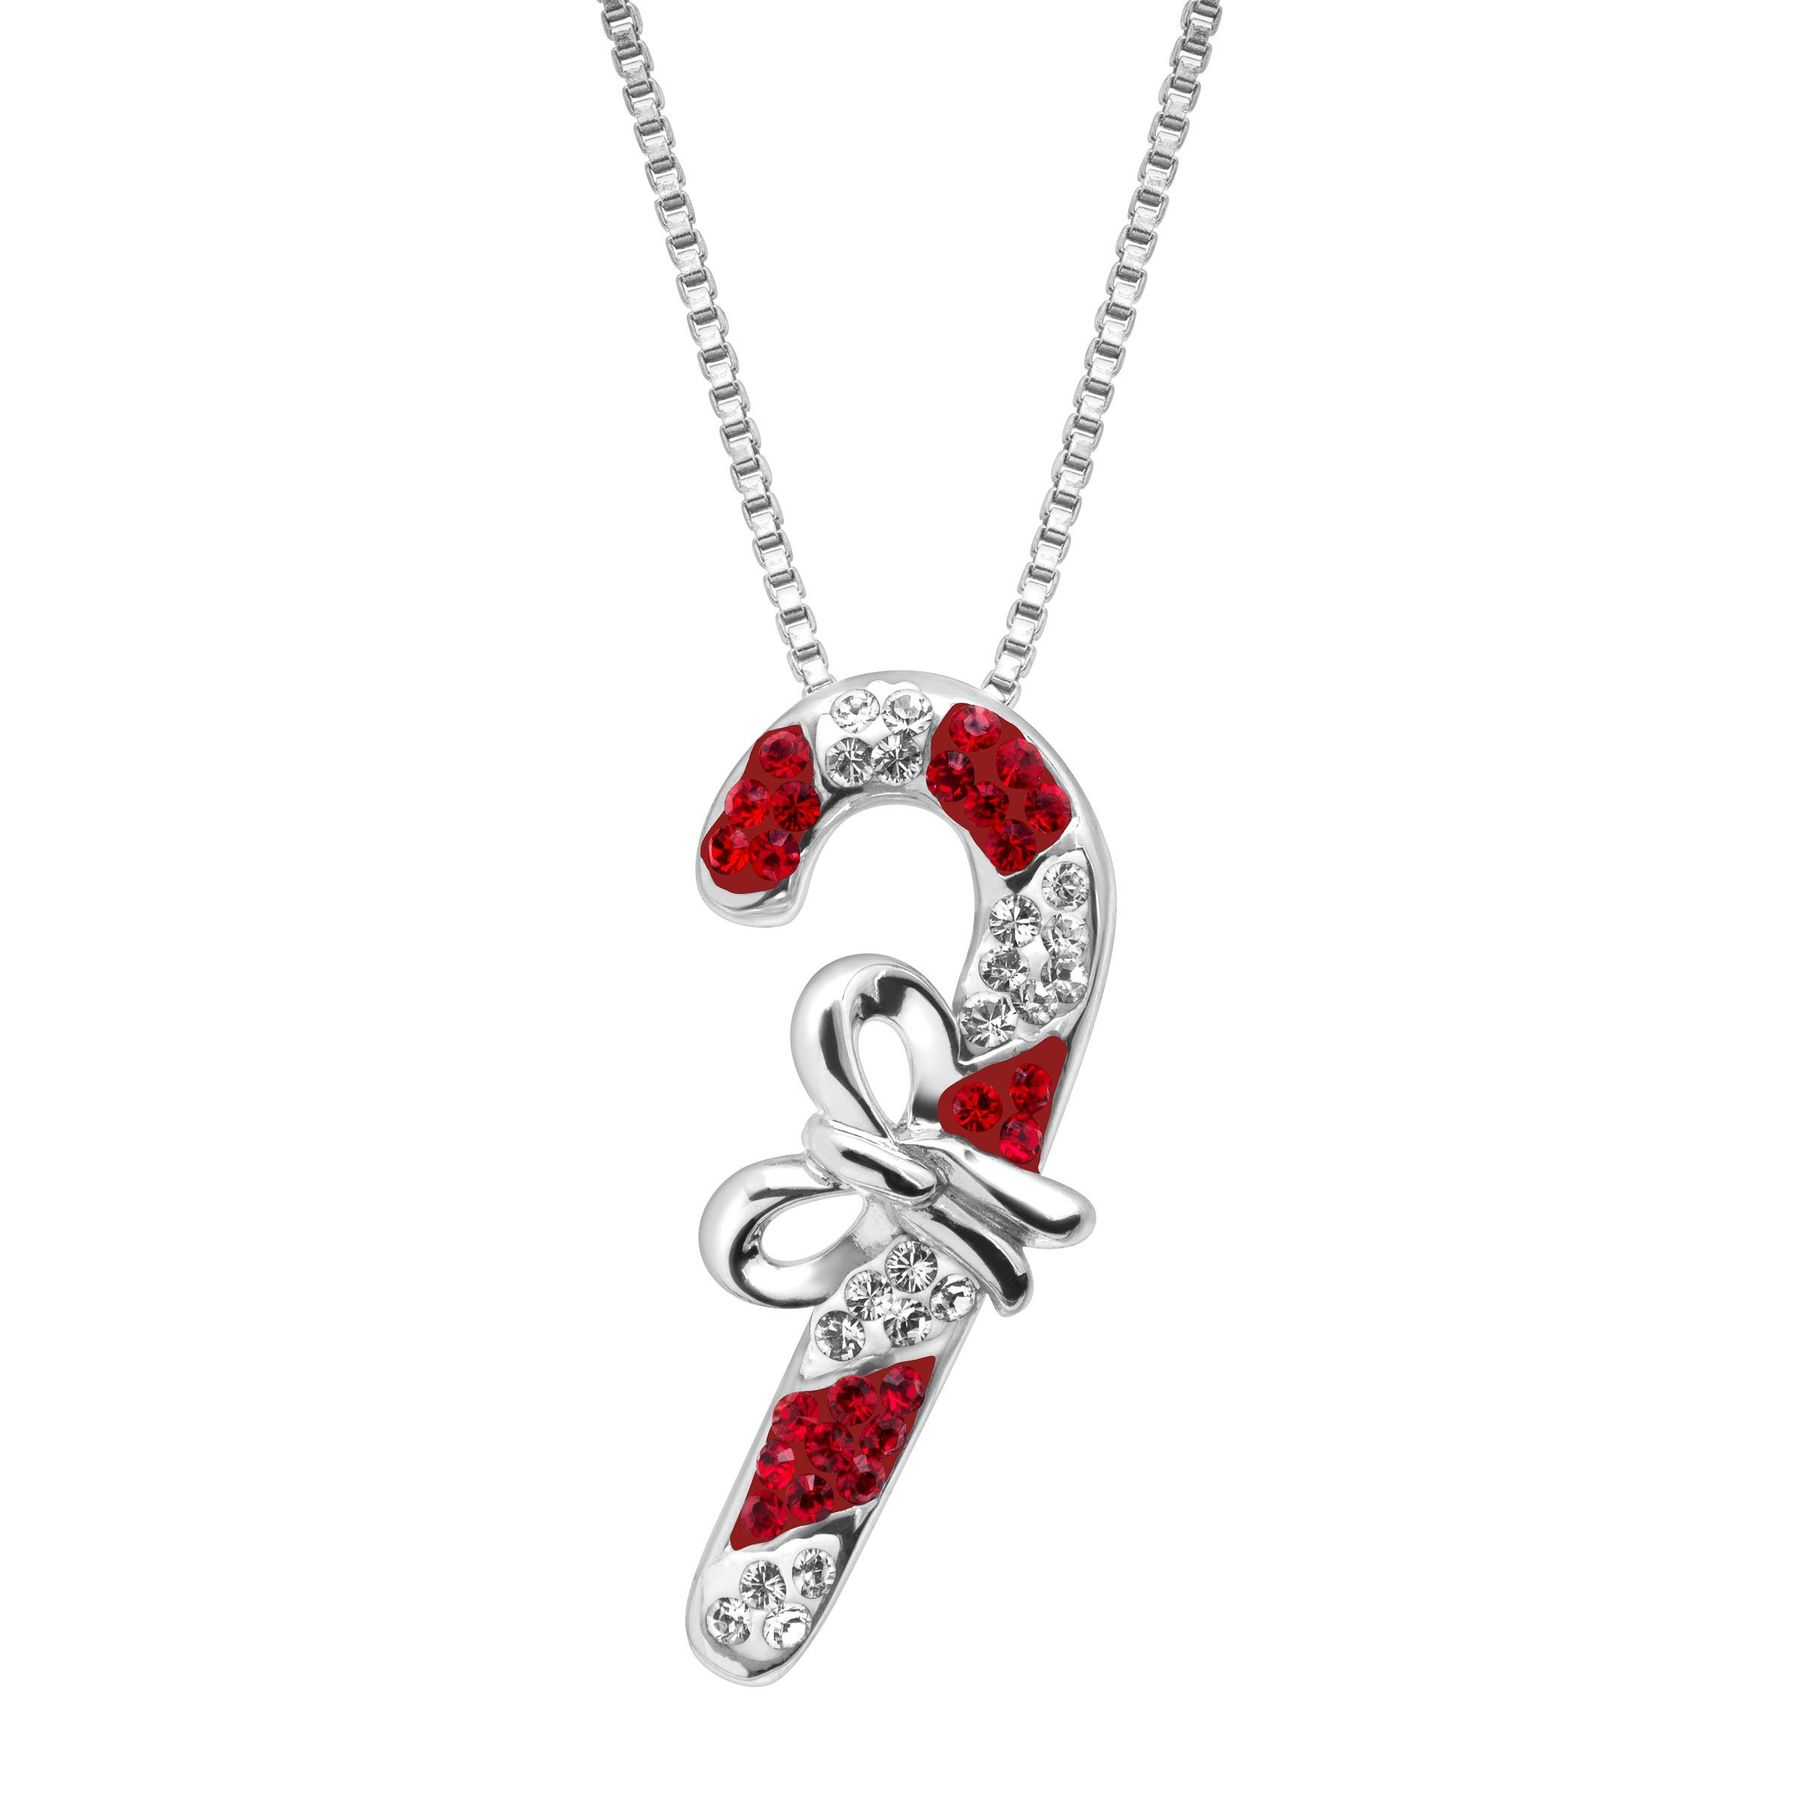 Crystaluxe Candy Cane Pendant with Swarovski Crystals